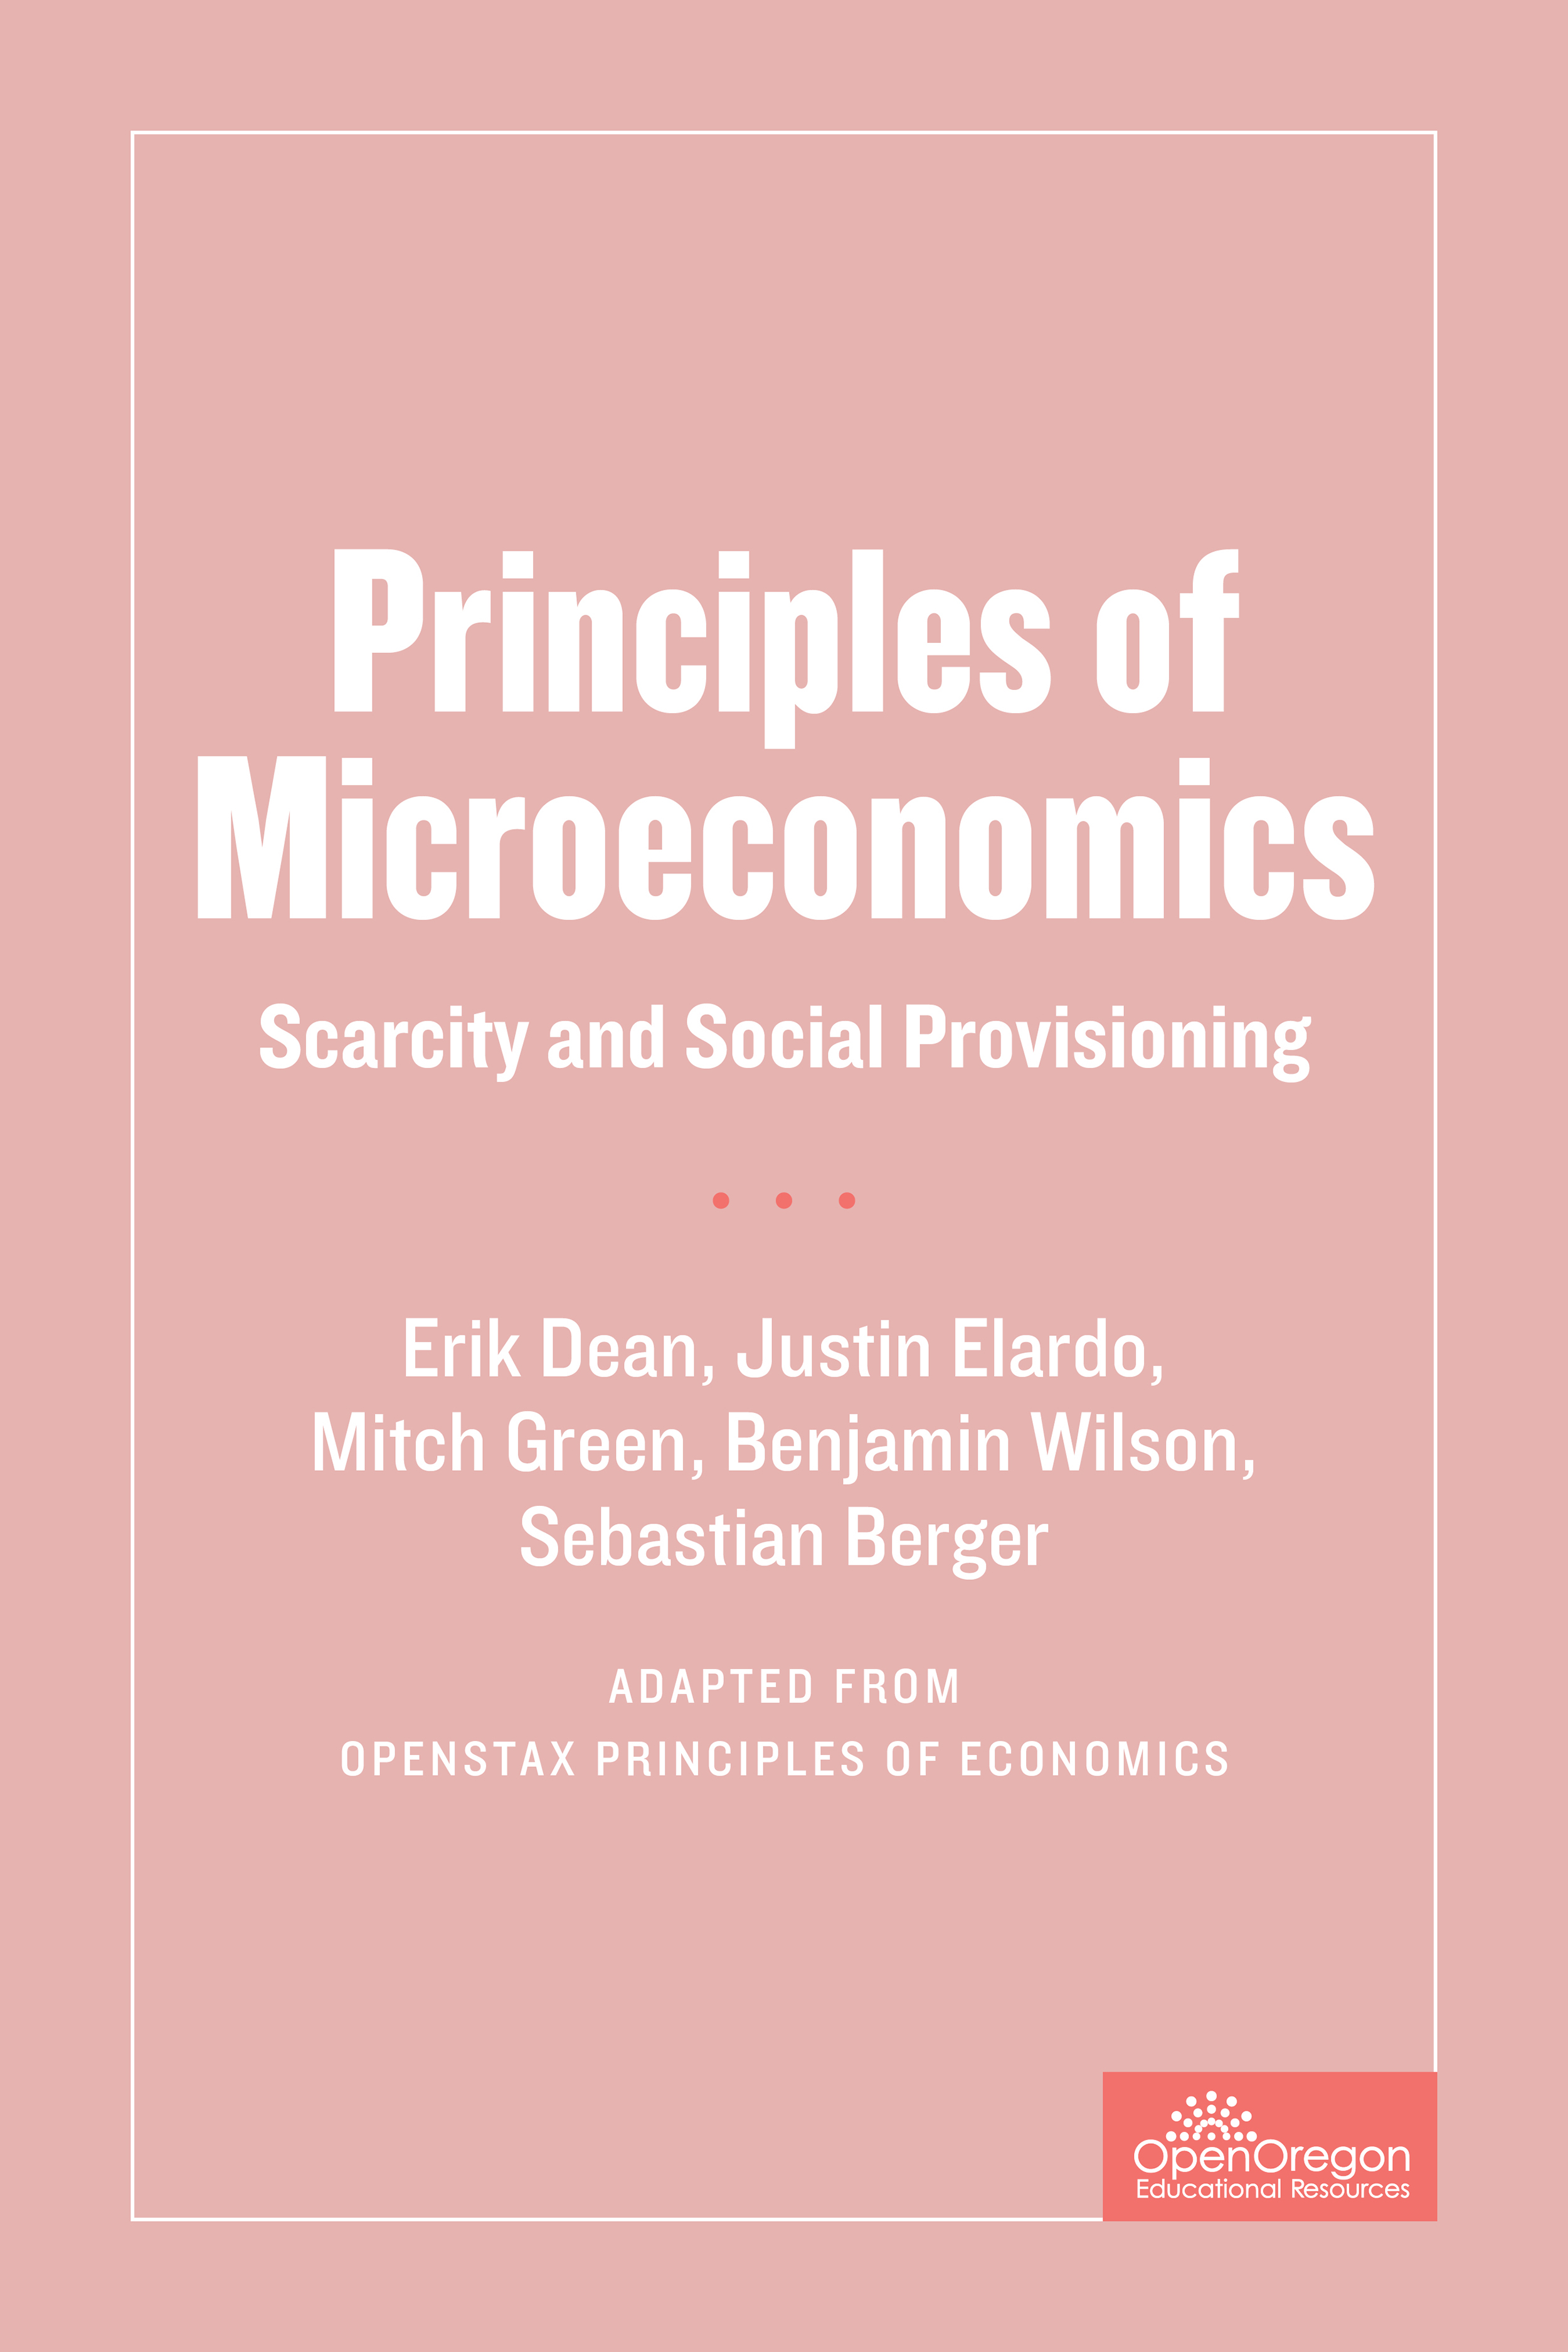 a description of the principles of microeconomics 0 reviews for principles of microeconomics online course 1401 principles of microeconomics is an introductory undergraduate course that course description.